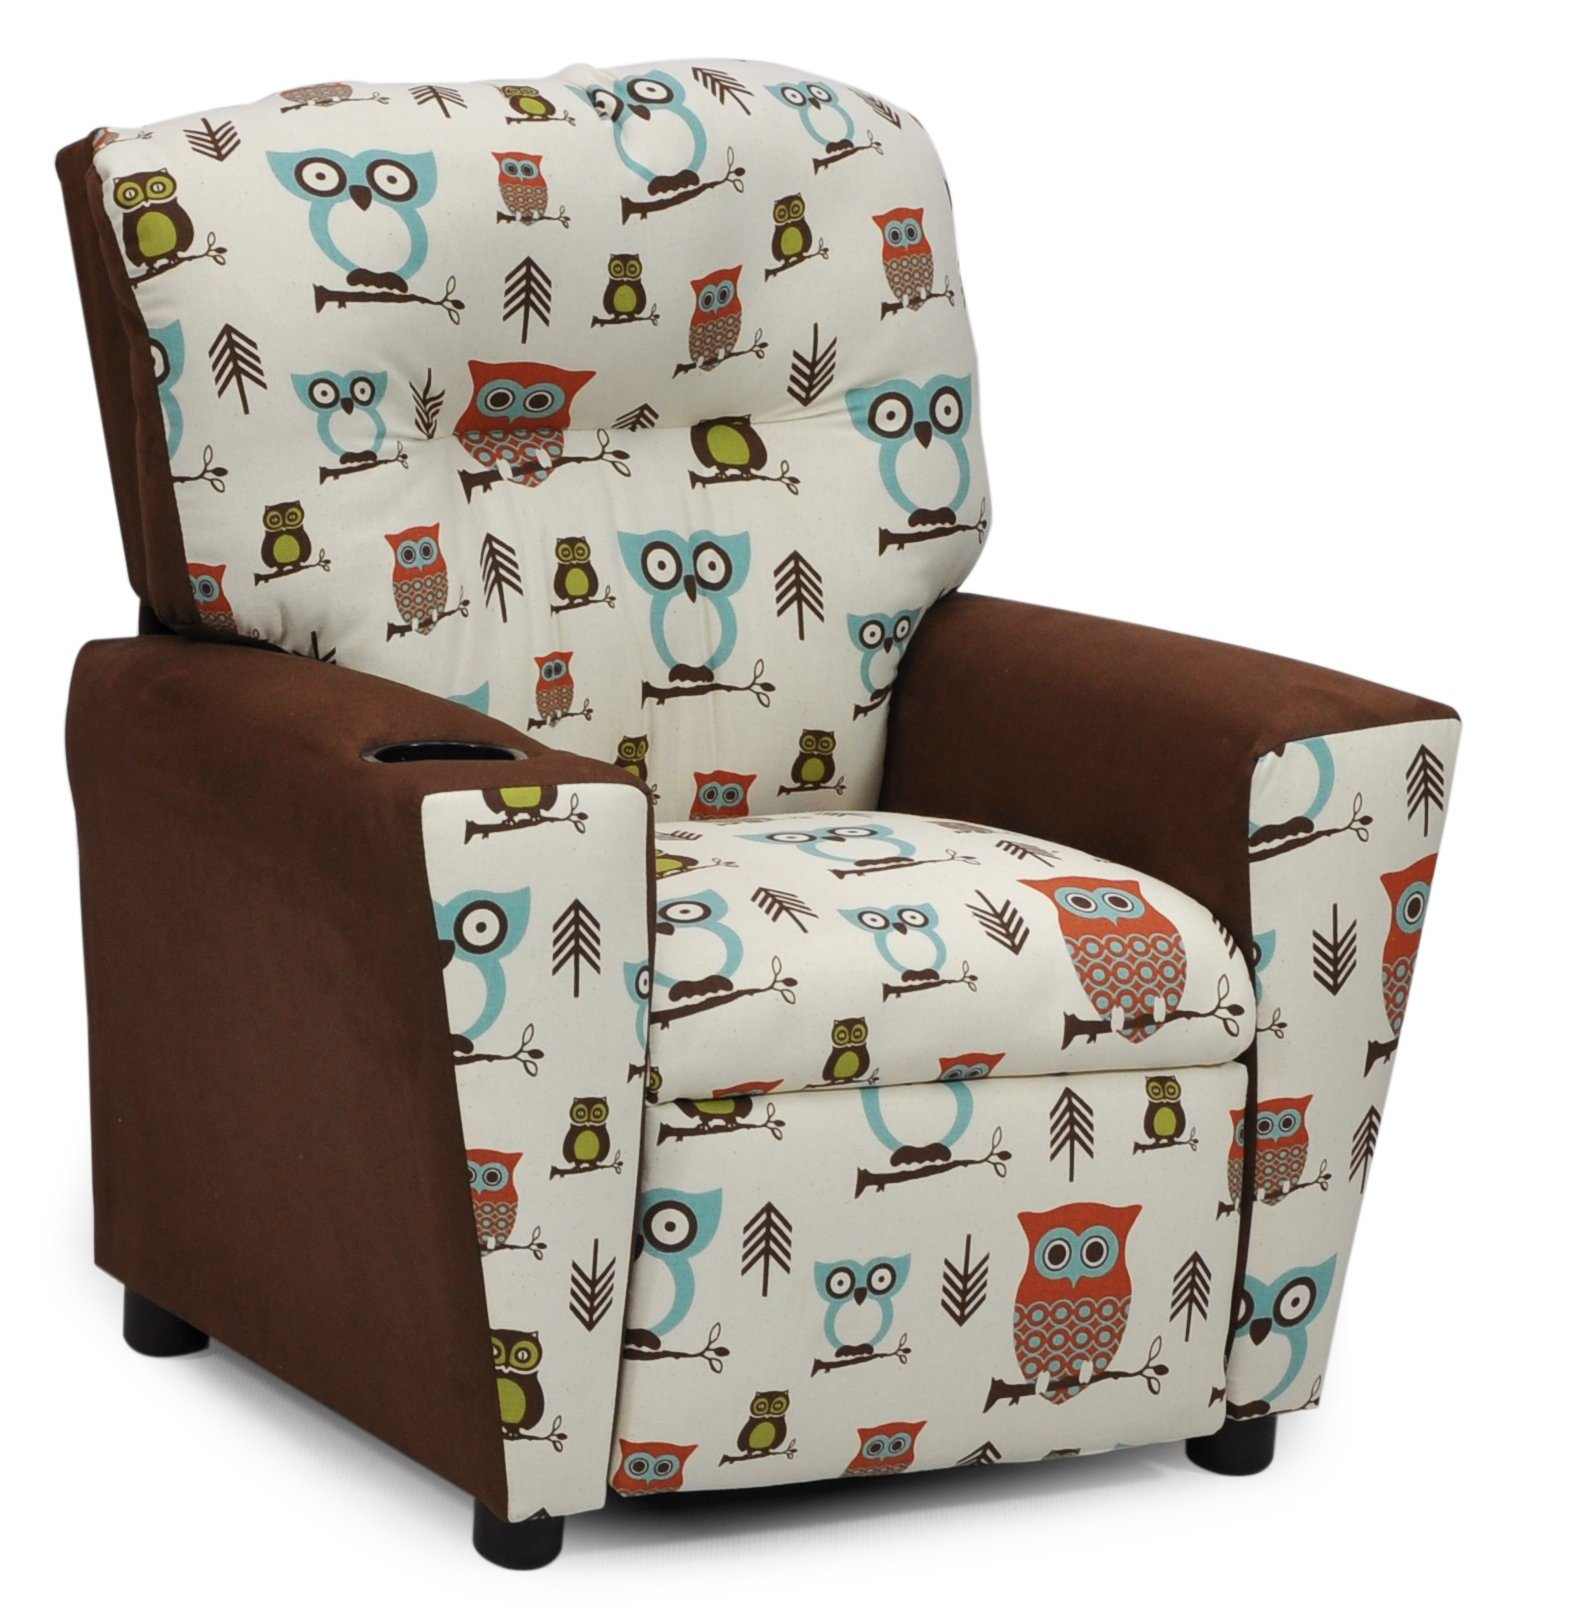 Childrens Upholstered Armchair Recliner - Your Child's Favorite Gift - Kids Reclining Chair with Cup Holders - We Love Owls :) - Two Fun Fabrics To Choose From by Fun Future